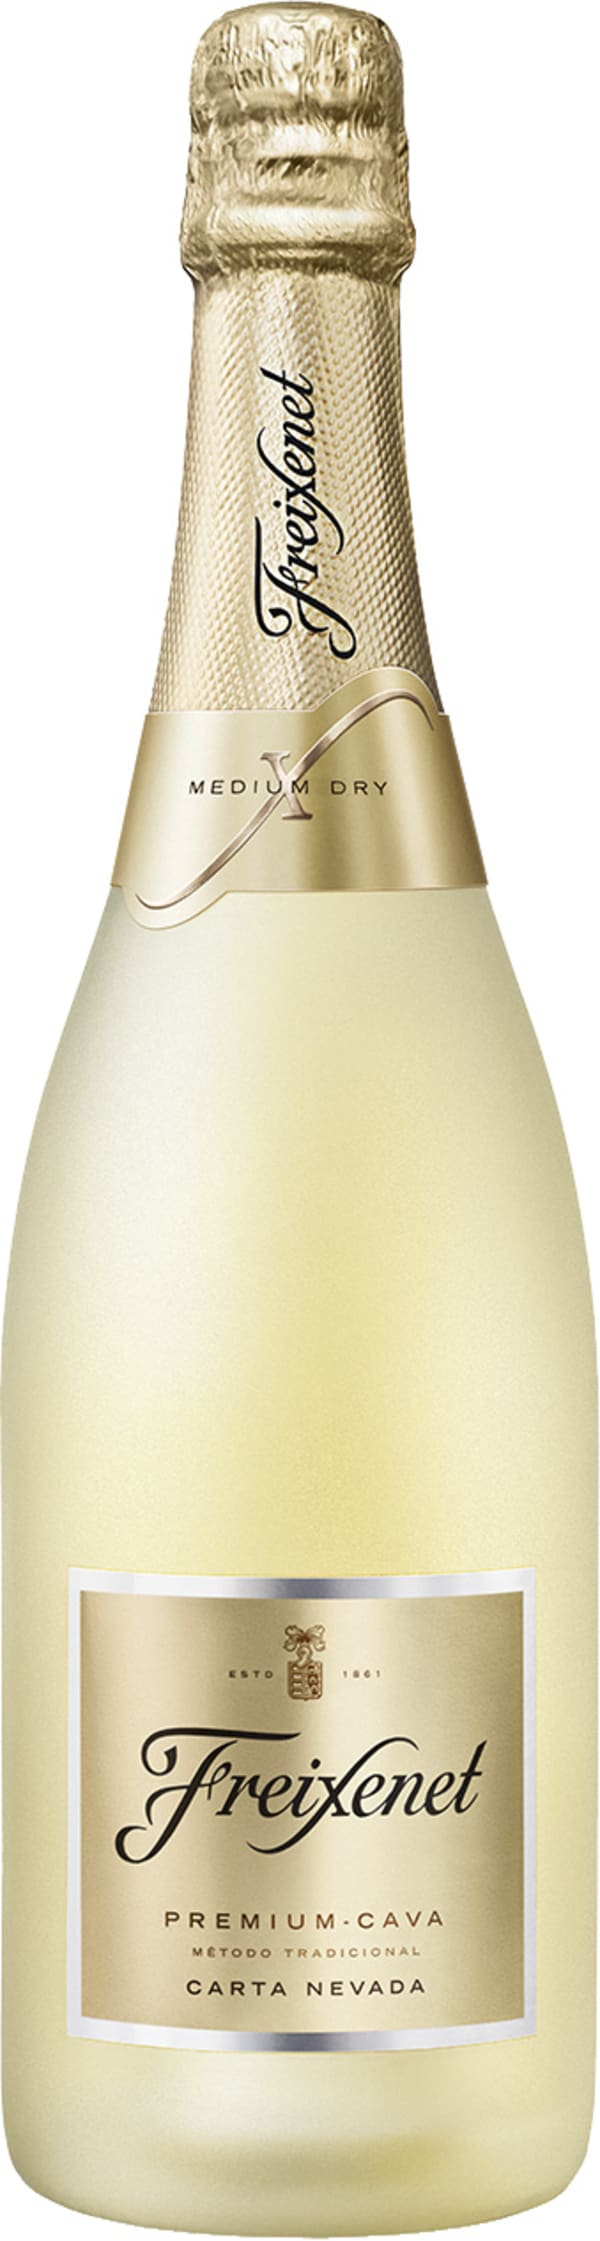 Freixenet Carta Nevada Cava Medium Dry